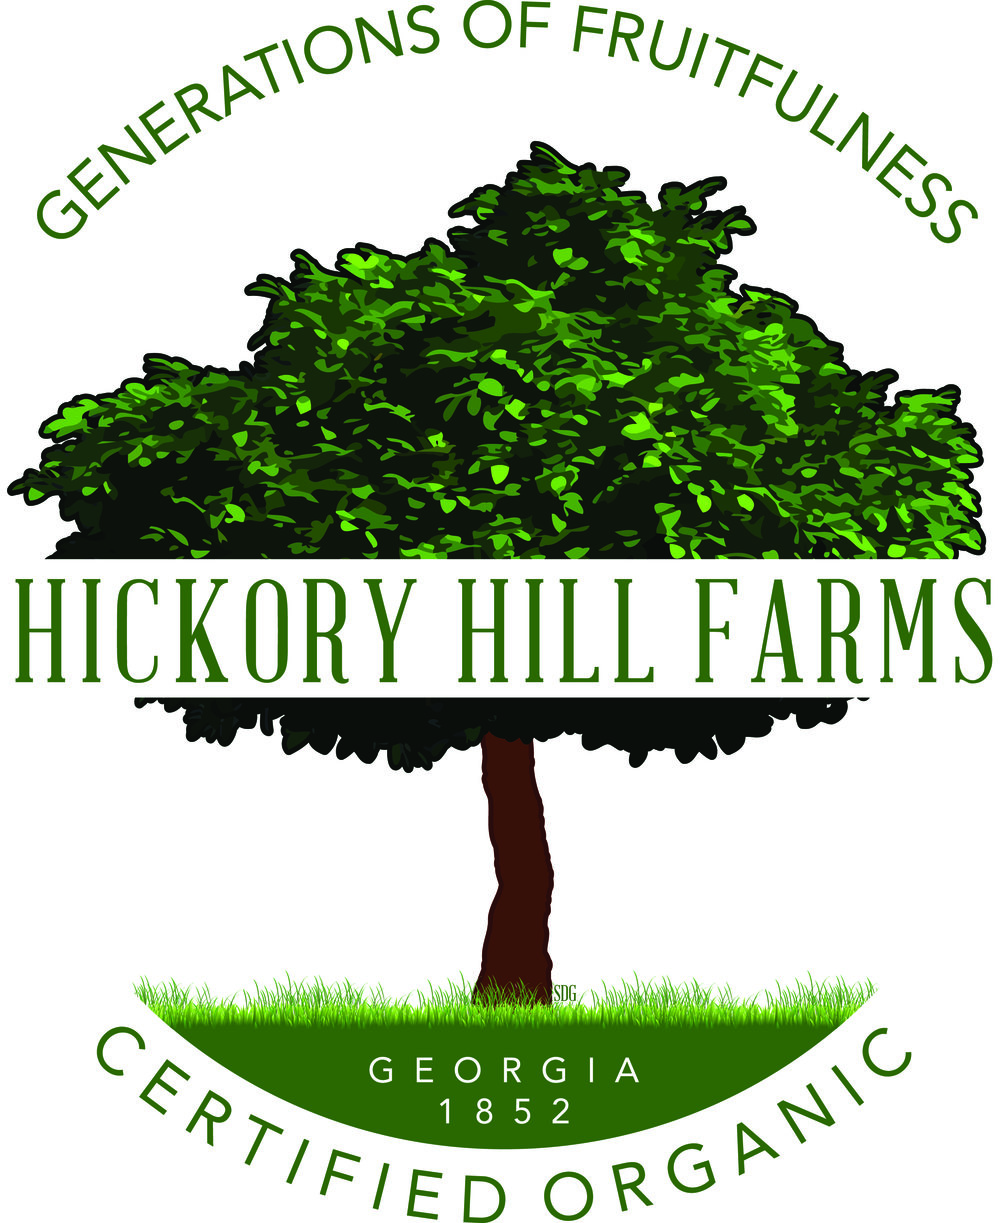 Hickory Hill Farm LOGO